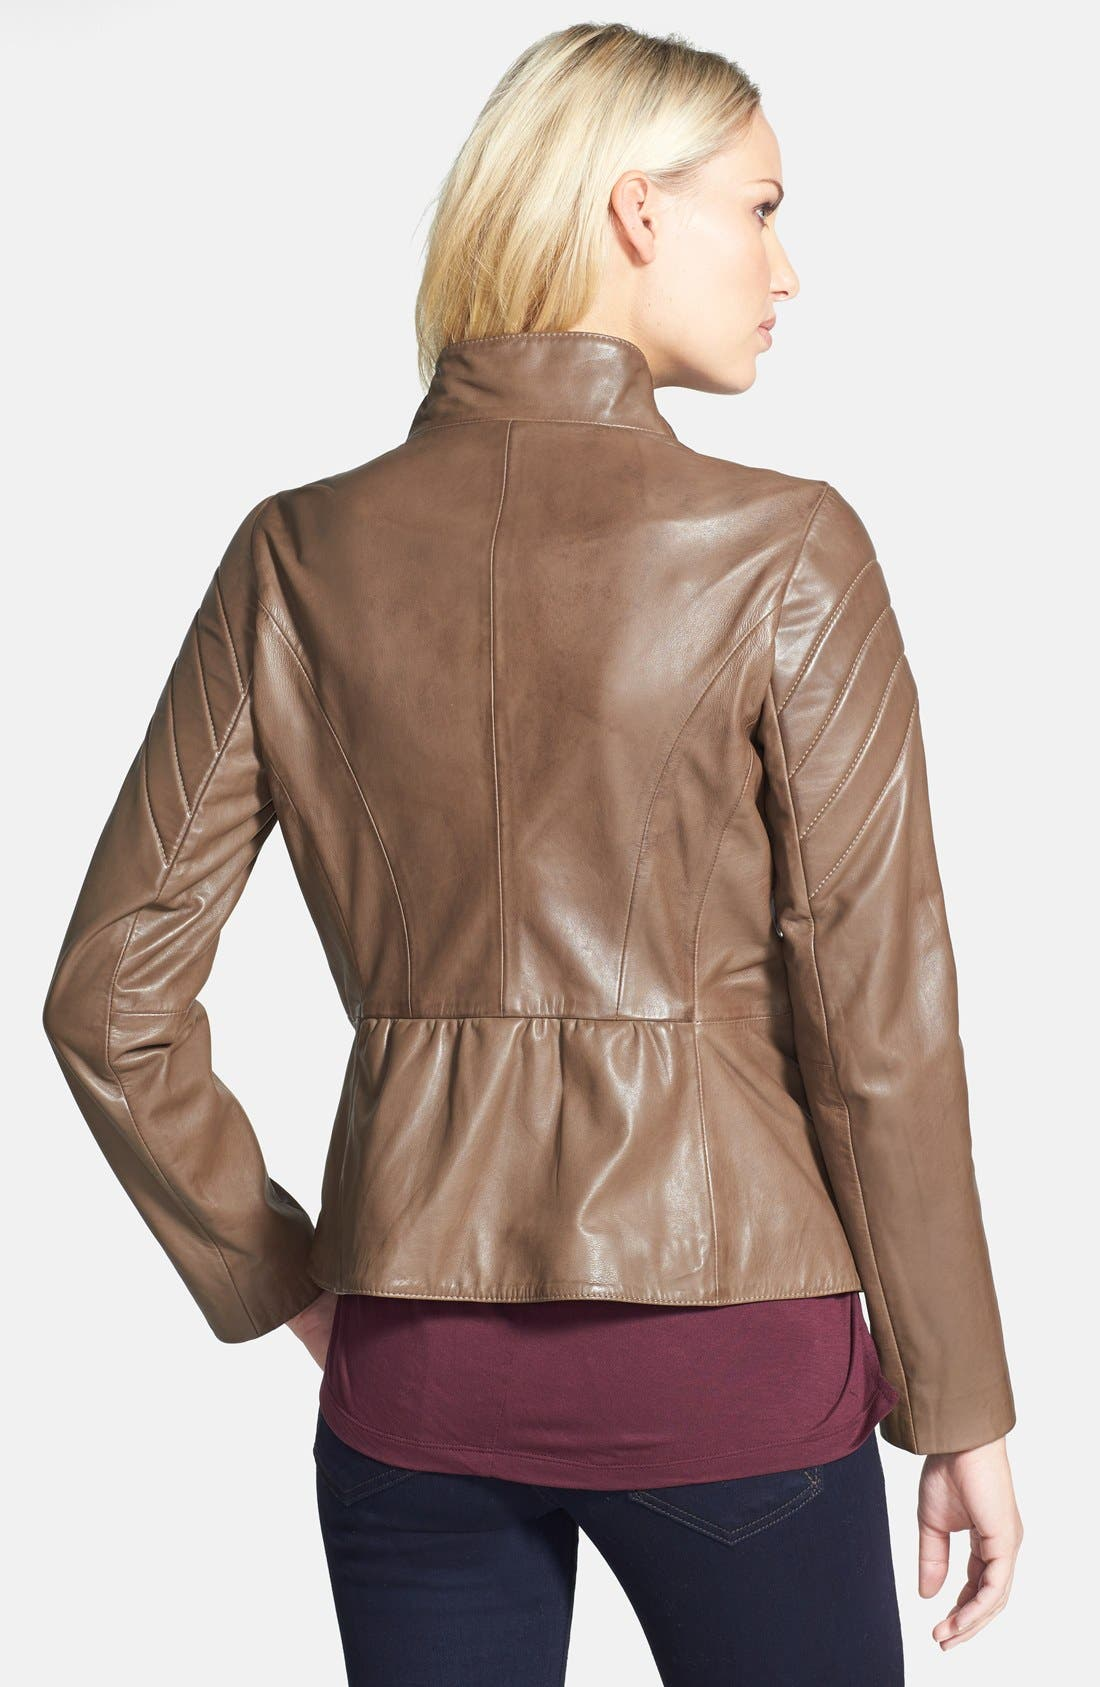 ELIE TAHARI,                             'Celeste' Asymmetrical Leather Moto Jacket,                             Alternate thumbnail 2, color,                             200